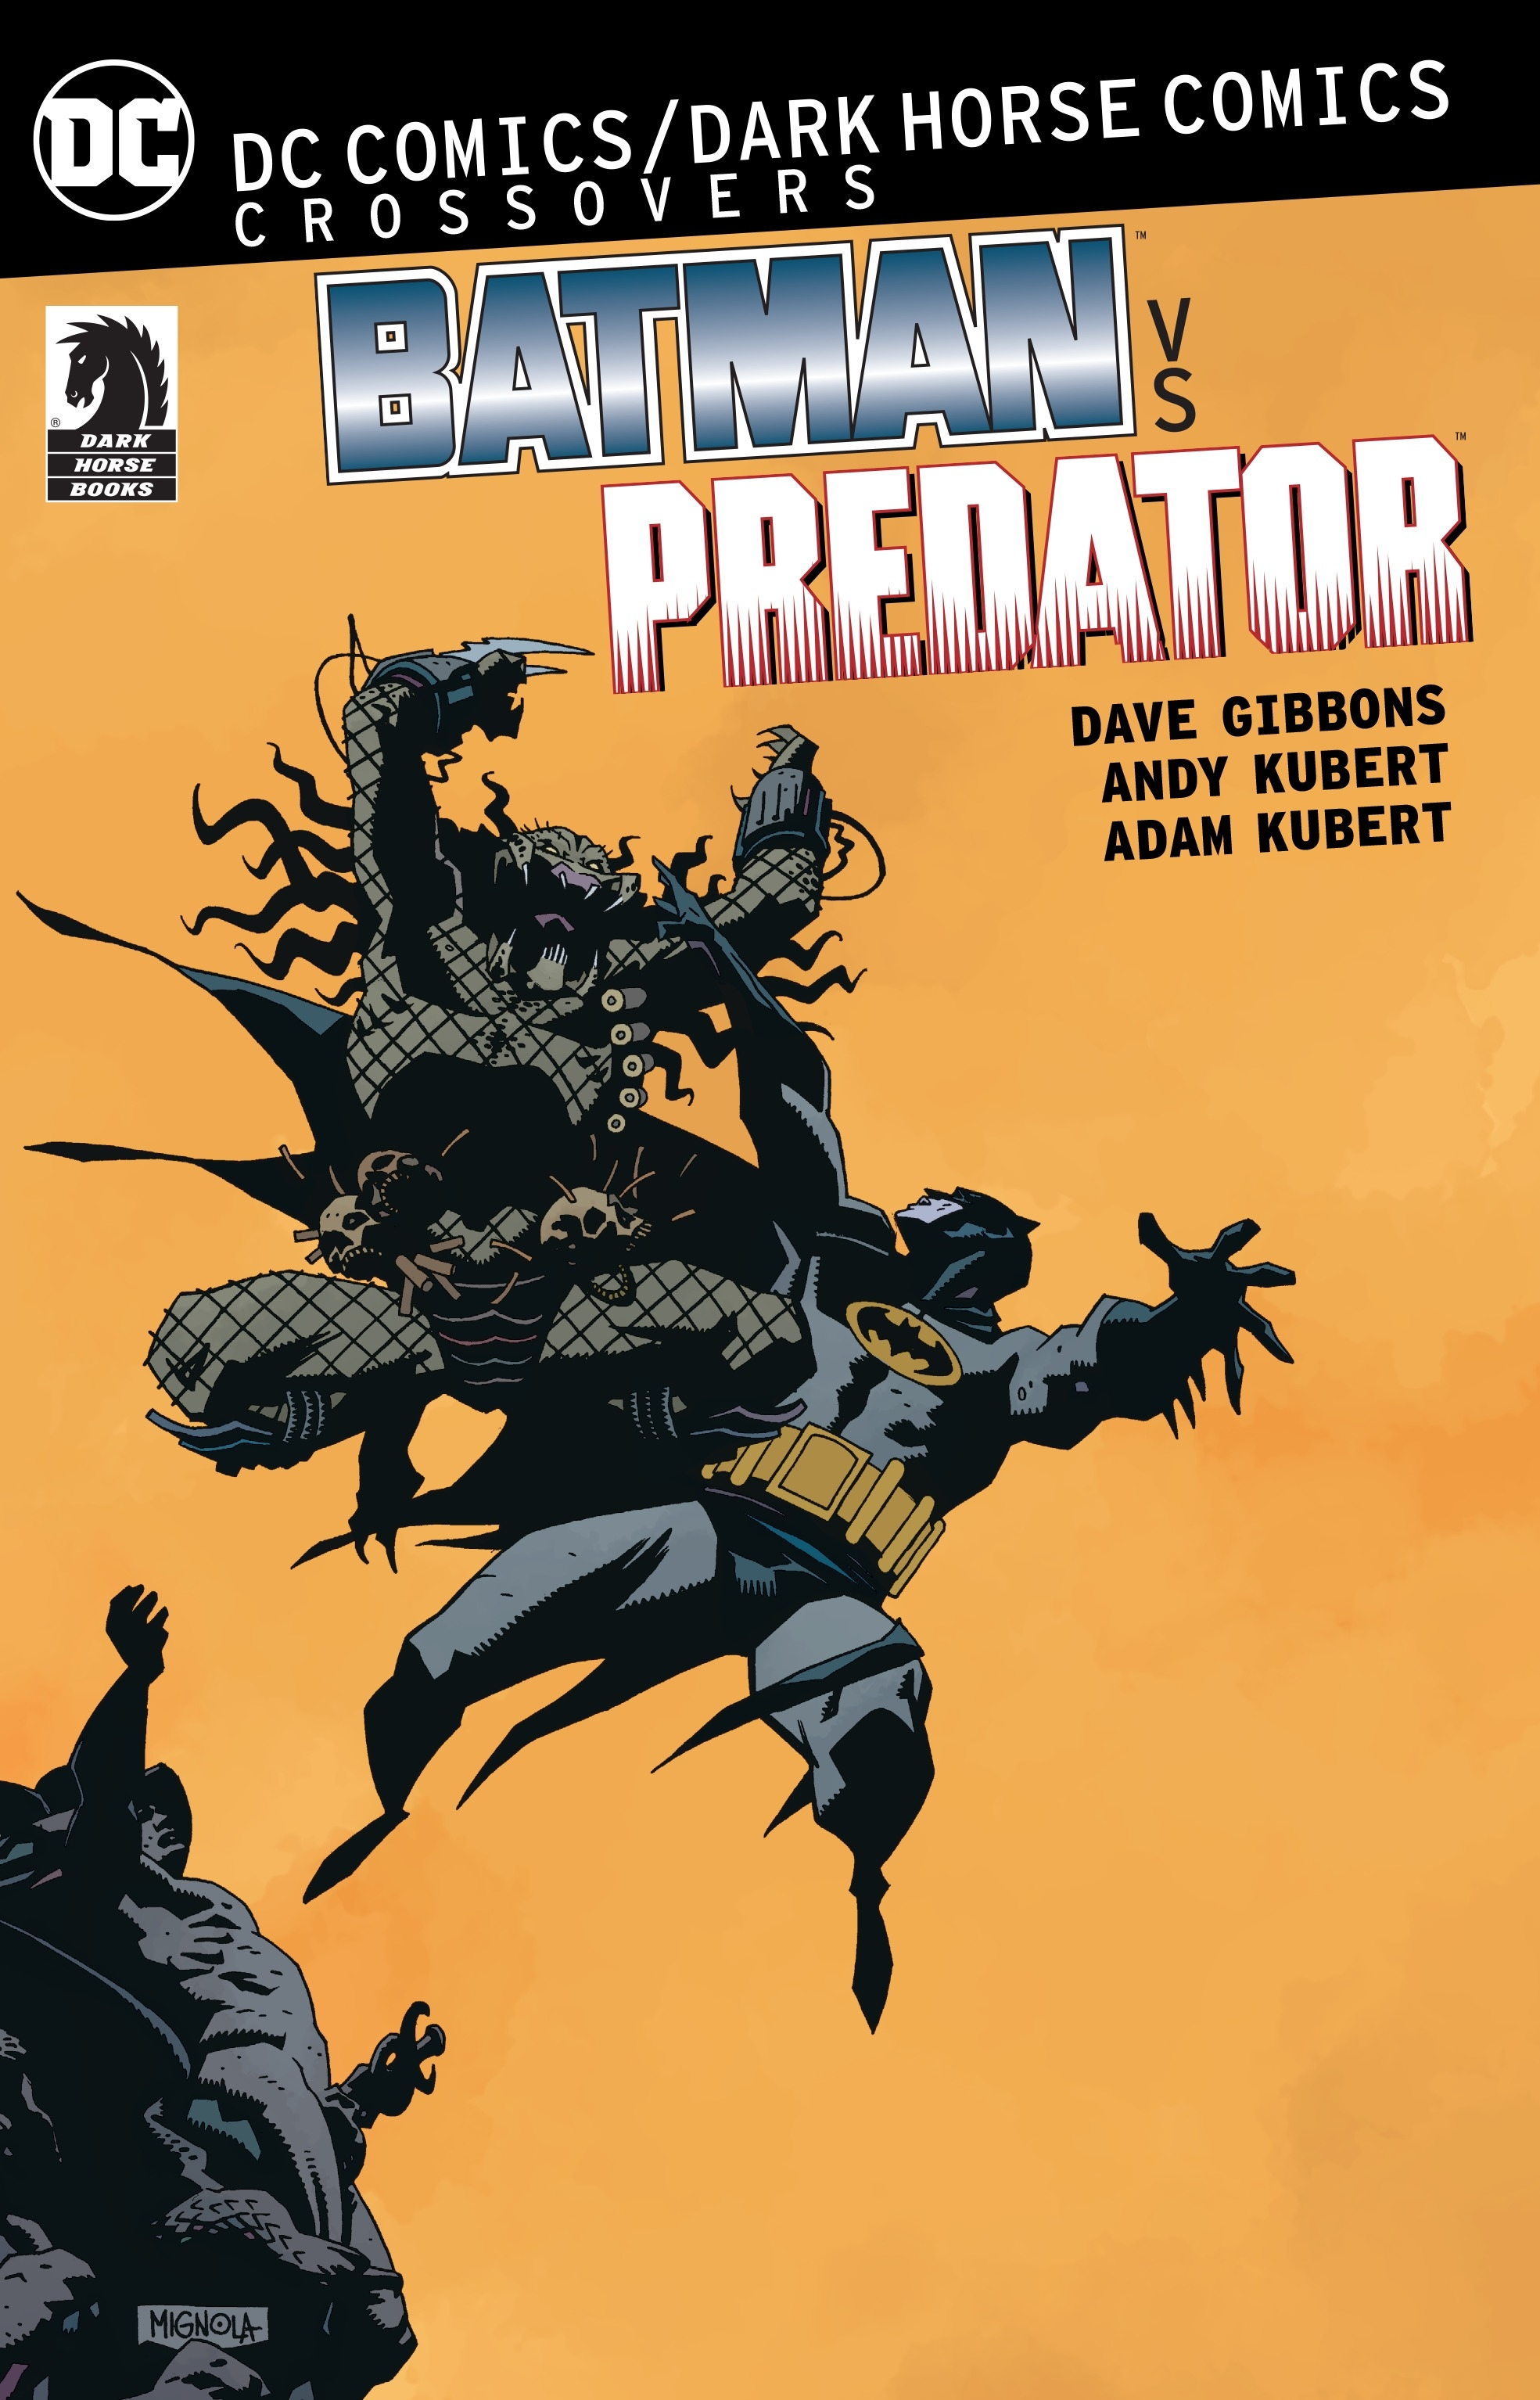 DC Comics/Dark Horse: Batman vs. Predator